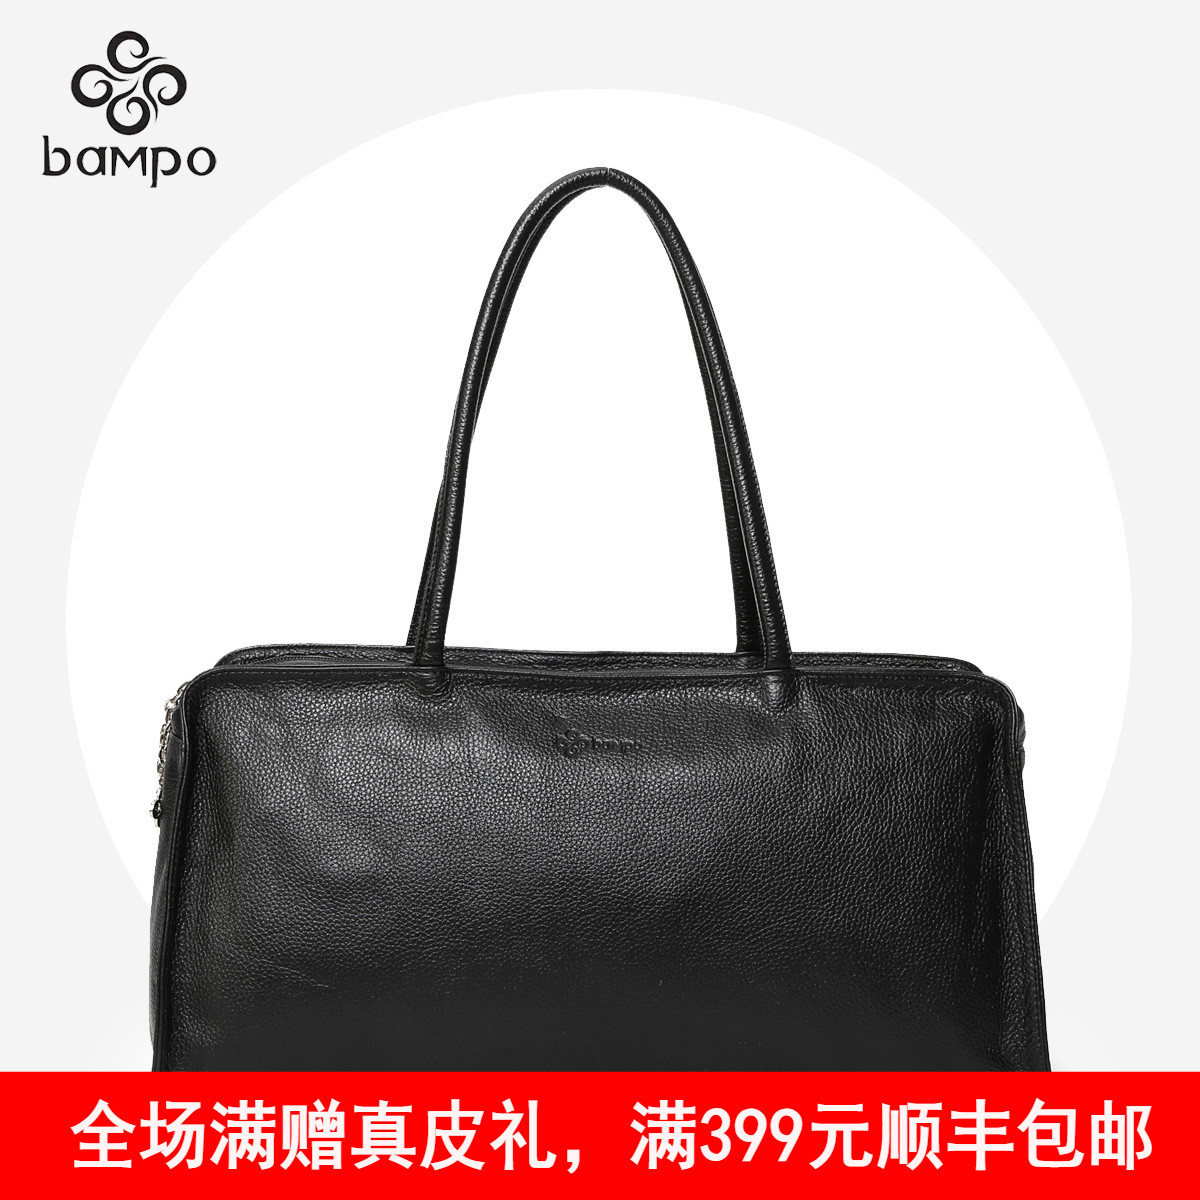 Product #40150624468